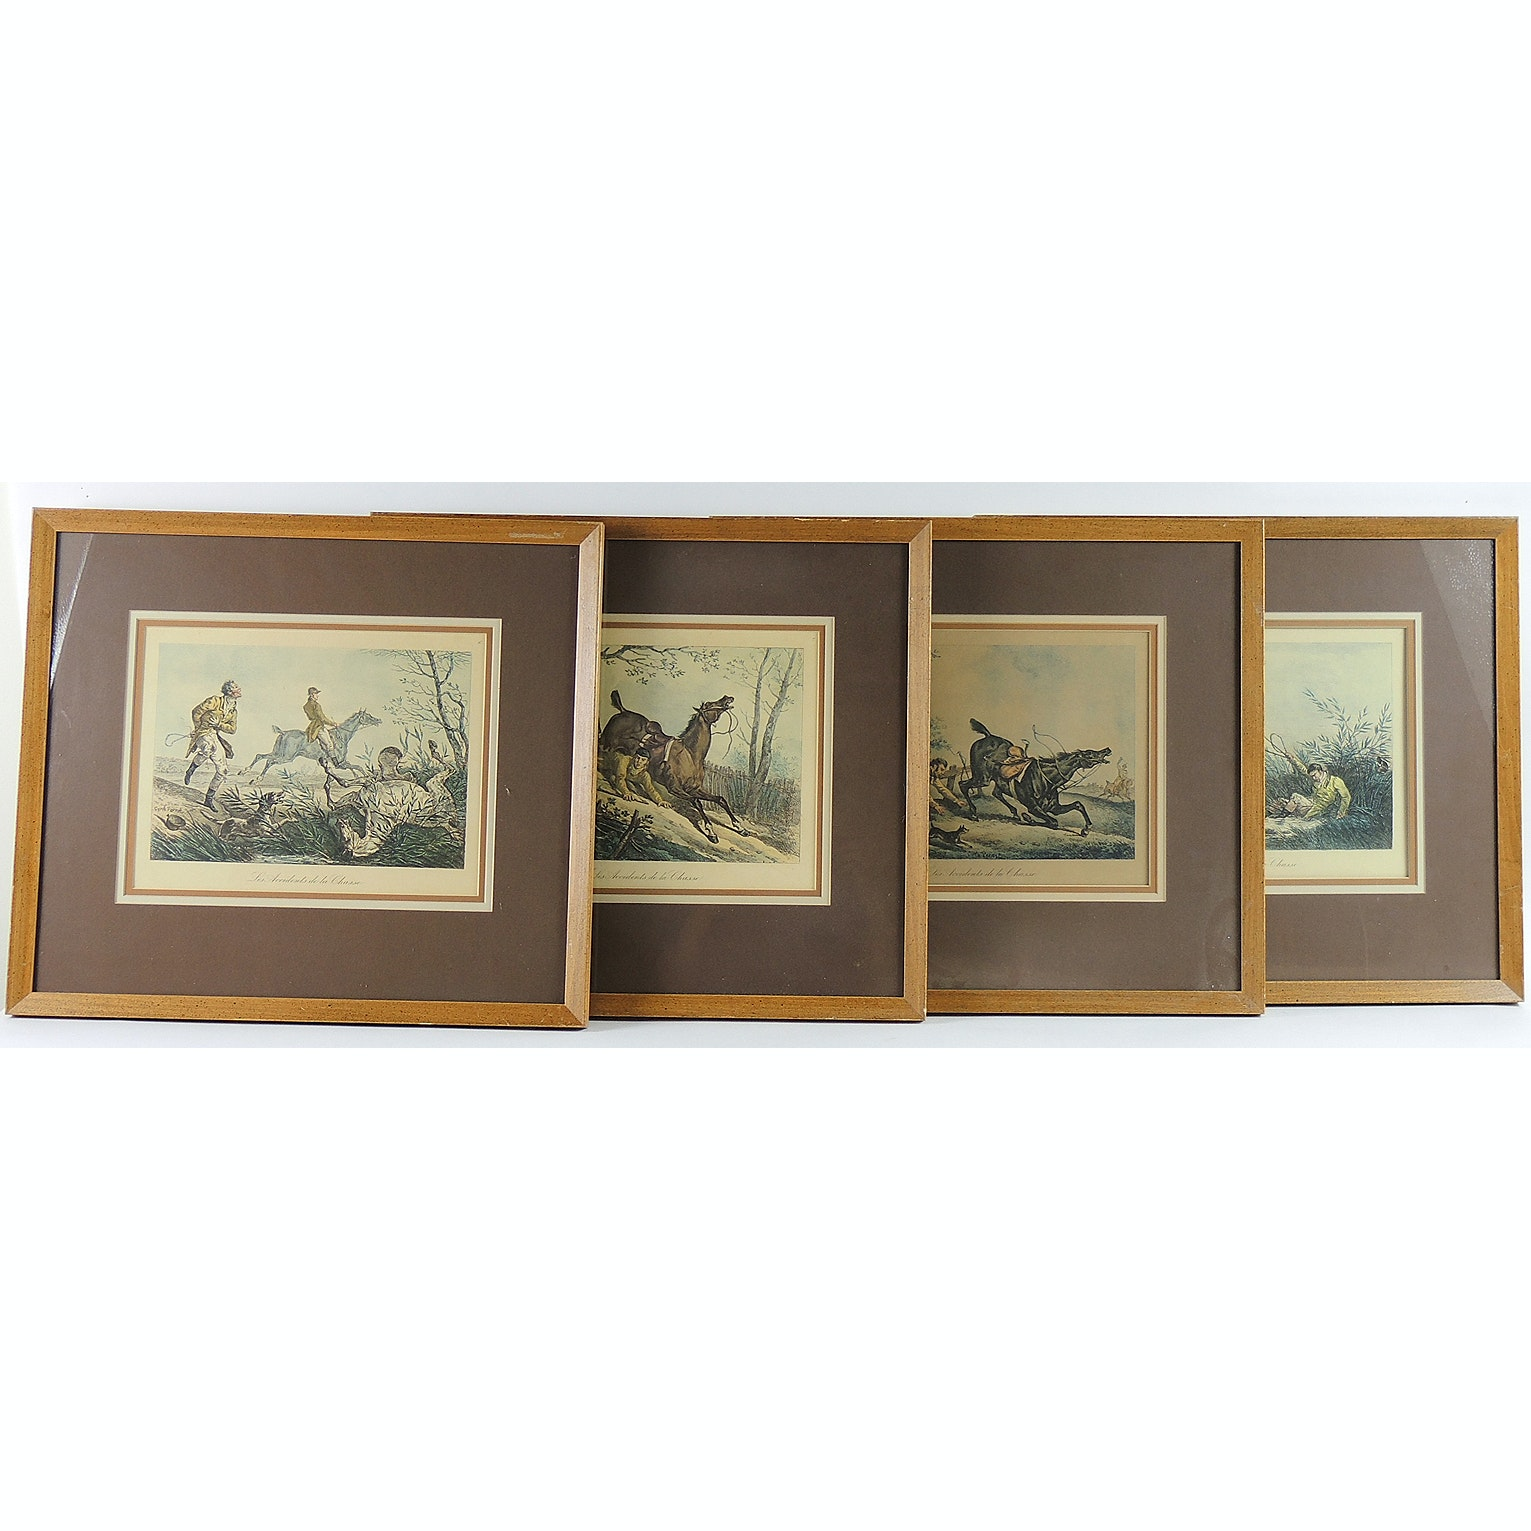 French Hand Colored Prints of Hunting Mishaps, After Carle Vernet